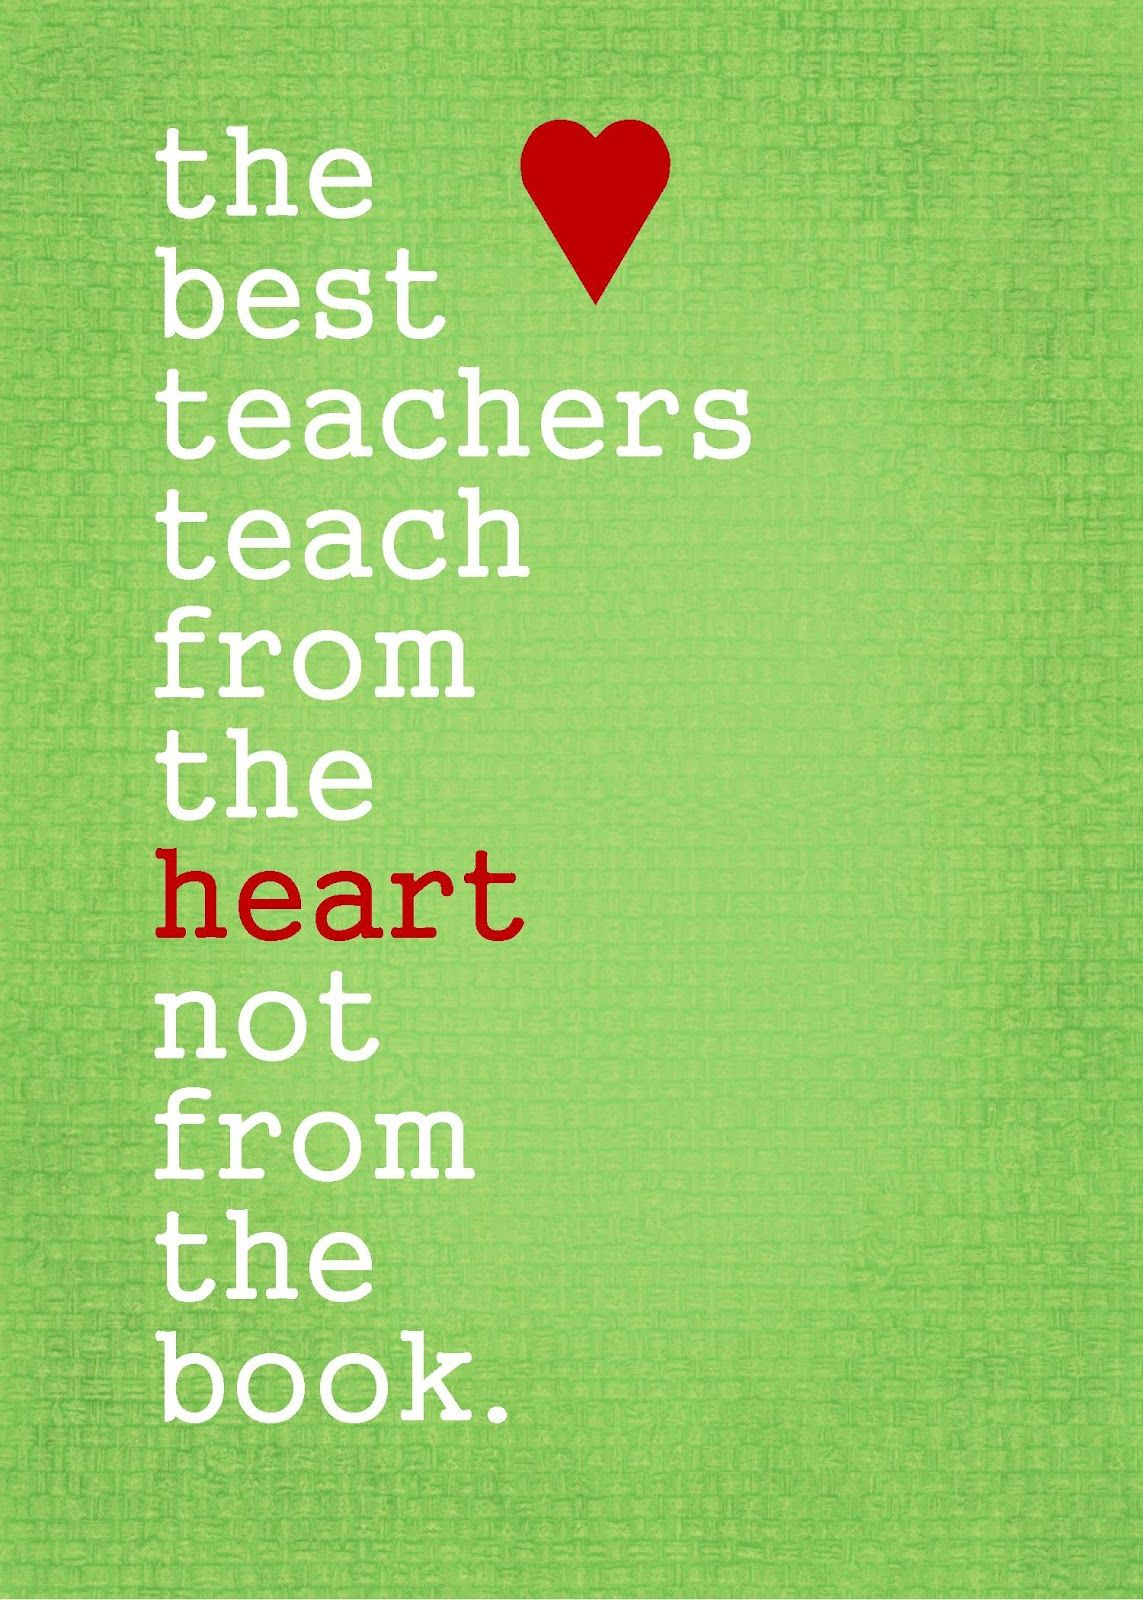 Educational Quotes For Teachers Full Of Great Ideas Teacher Gifts  Free Printable Quotes And